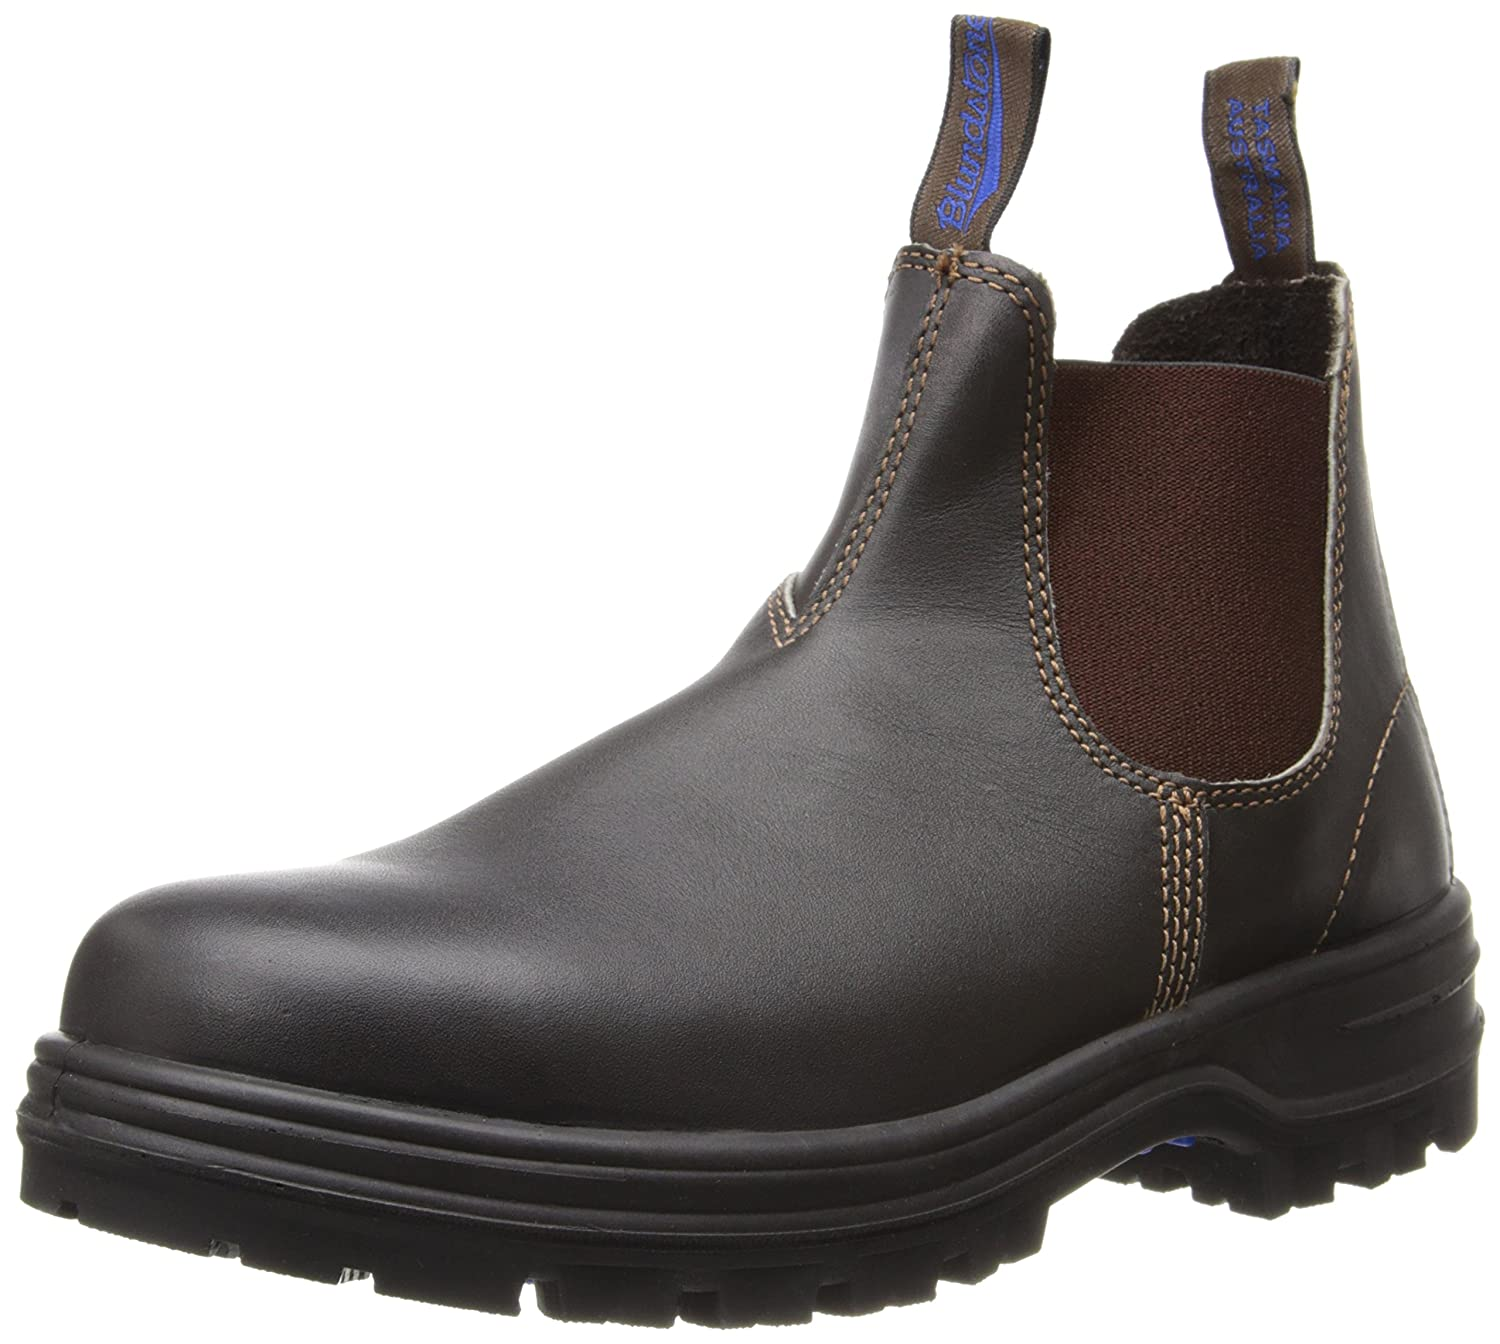 Blundstone Work Series 140 Review